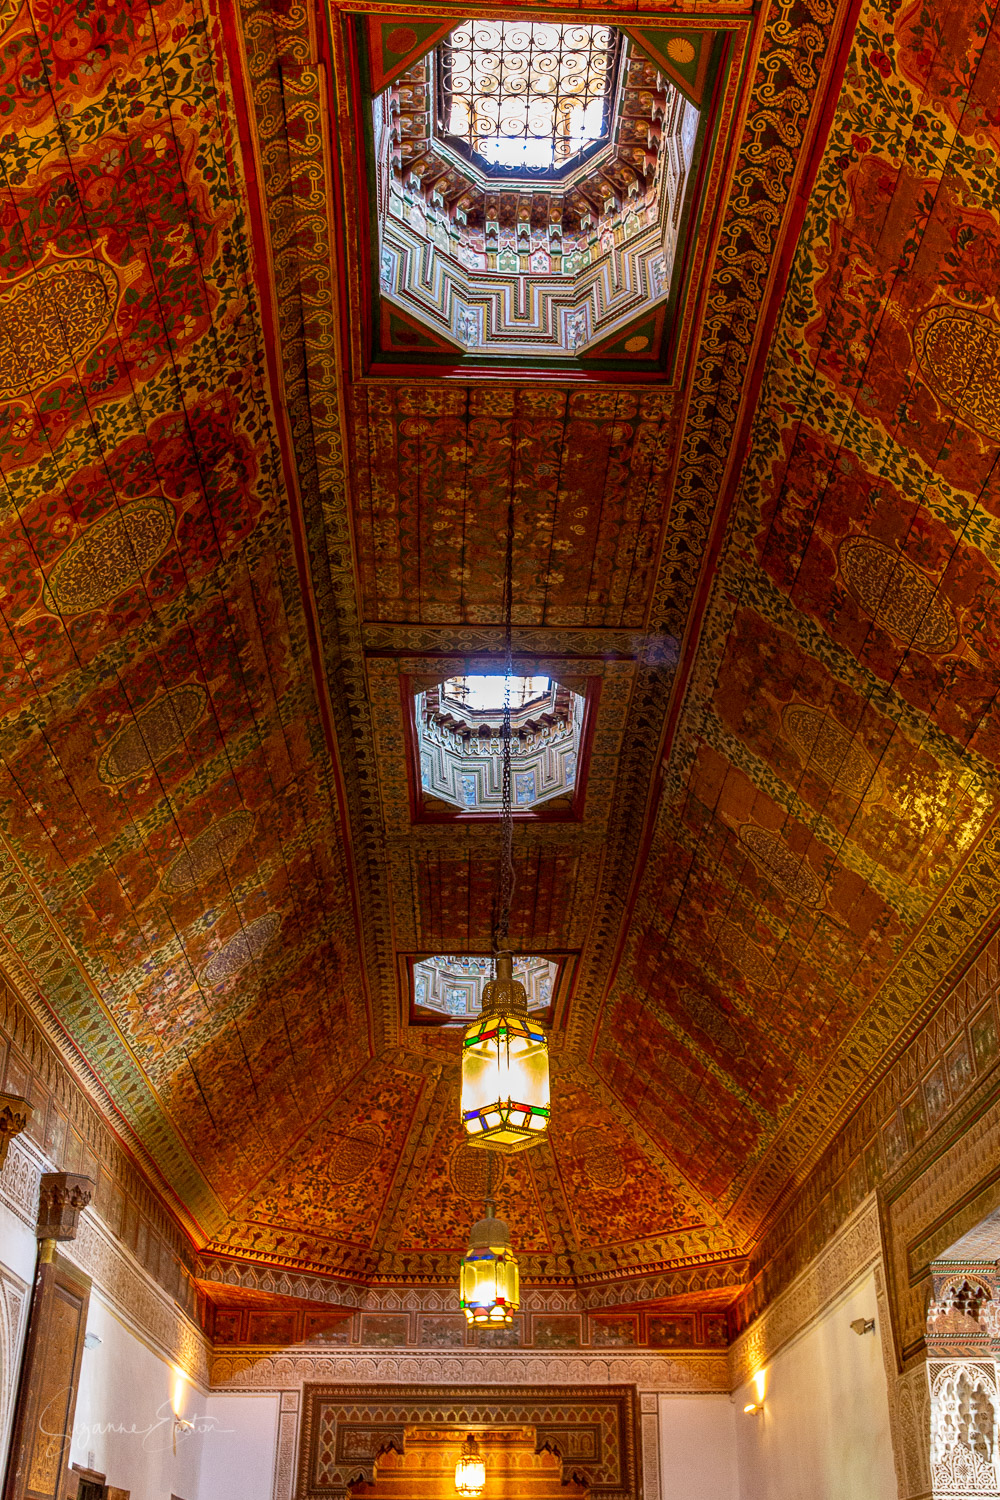 An ornate ceiling in Palais Bahia, Marrakech